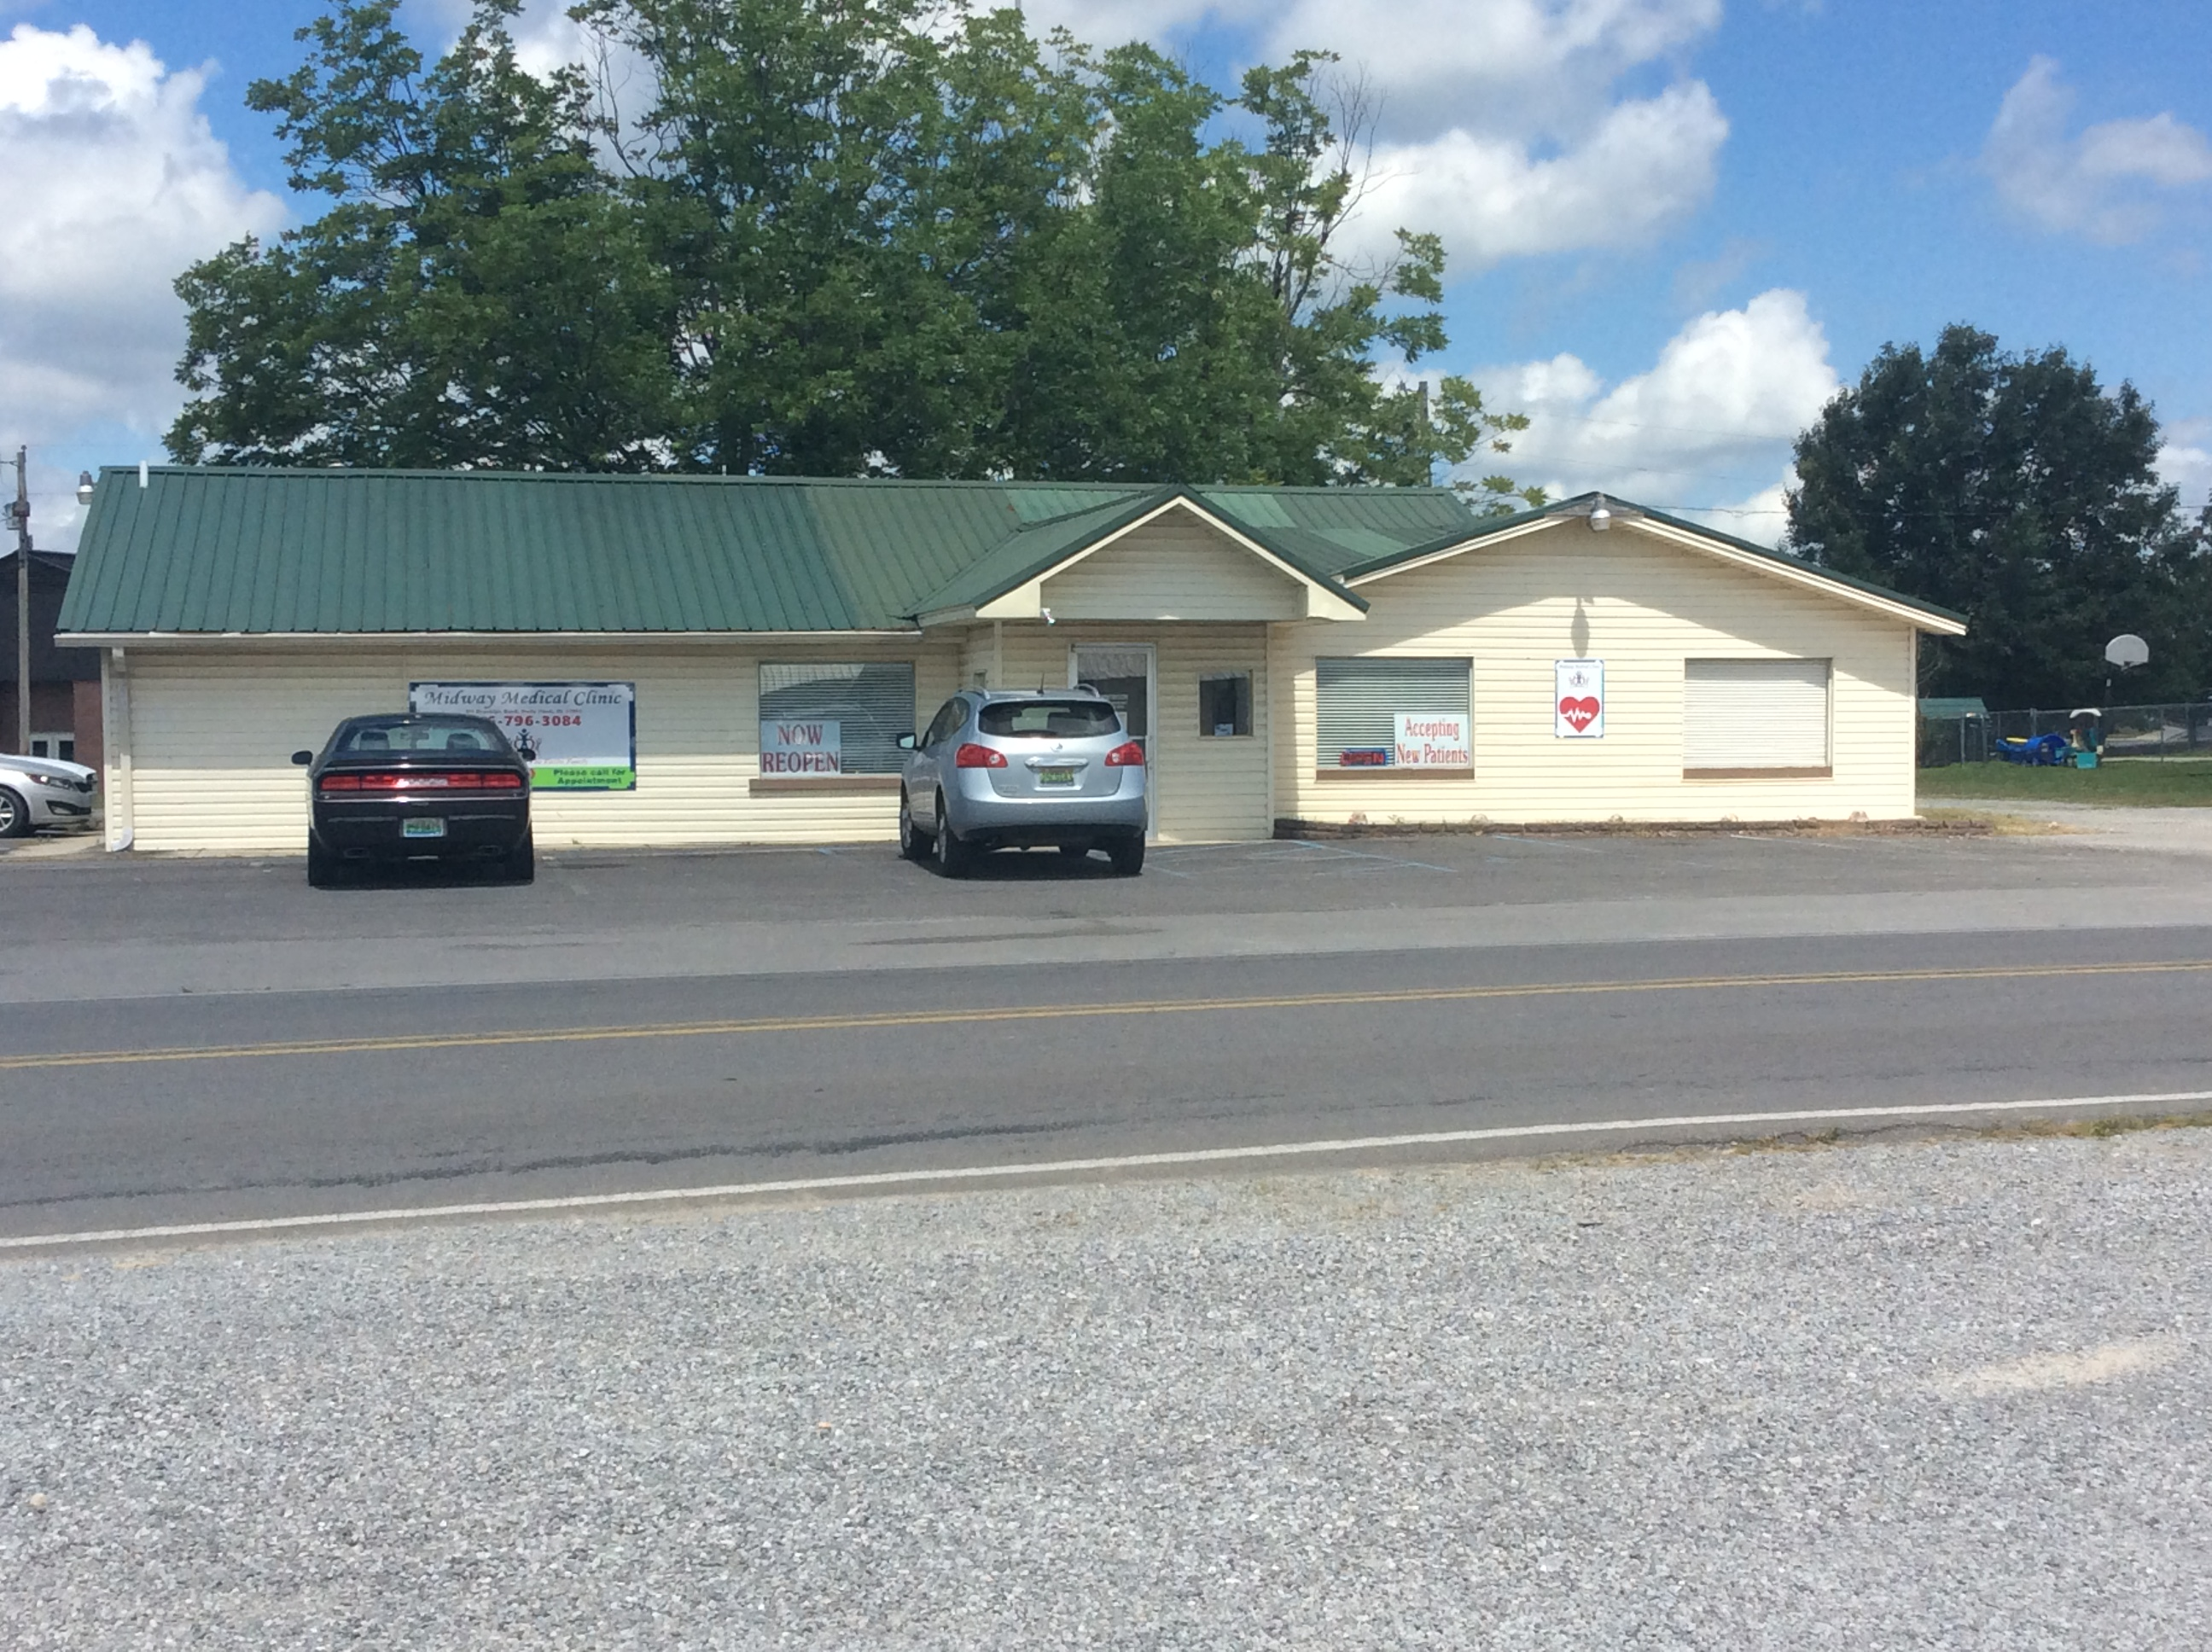 Midway Medical Clinic in Holly Pond re-opens | The Cullman